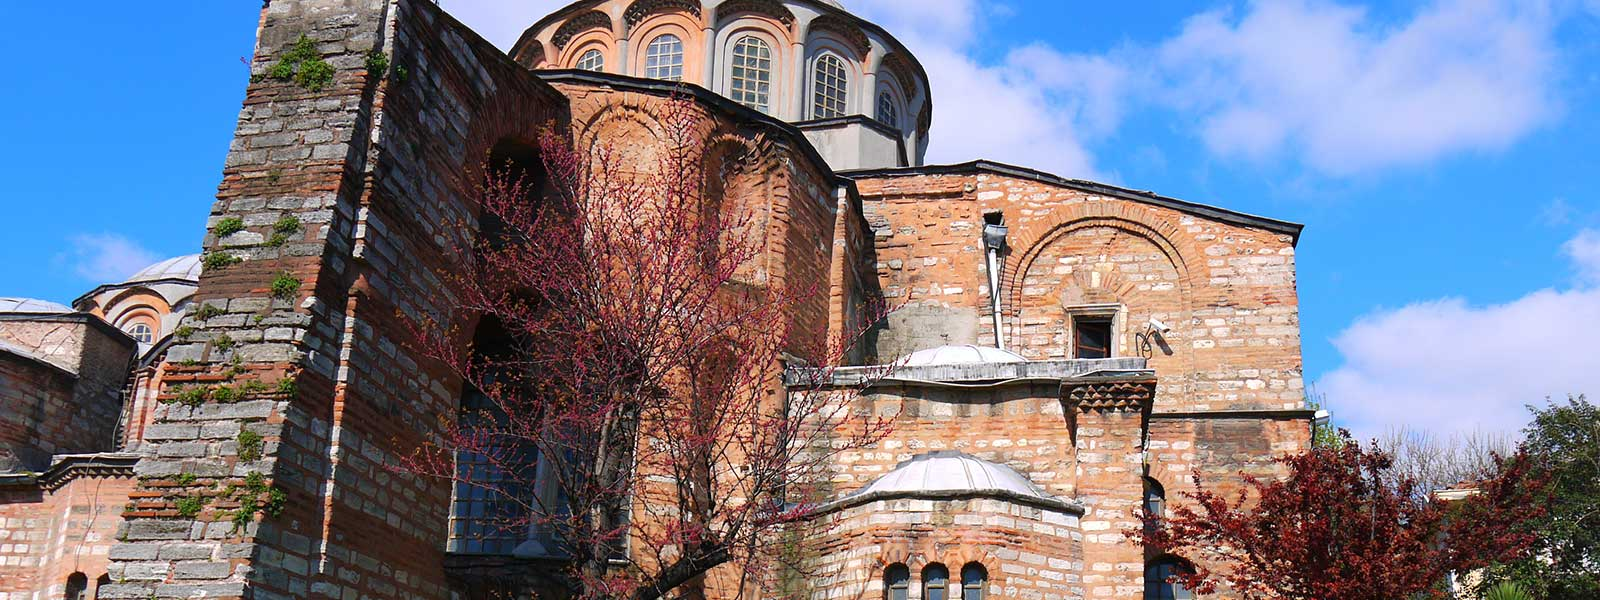 Chora Church (Kariye Museum)